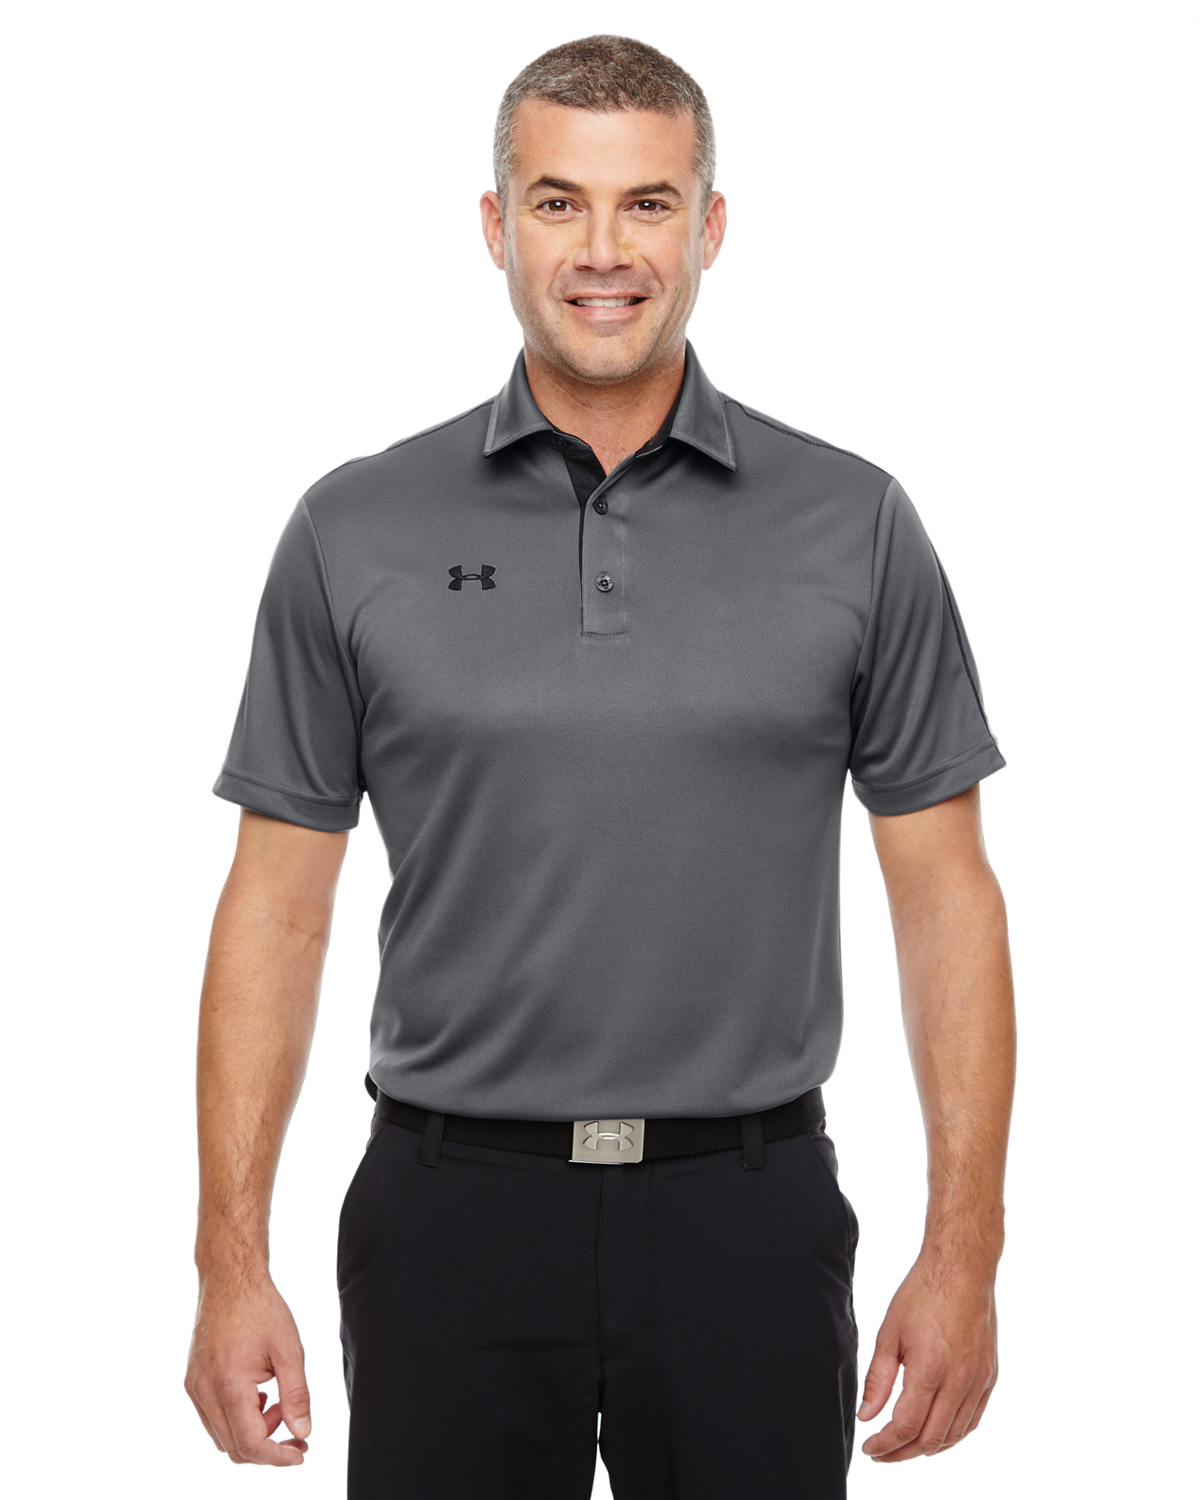 Under armour custom tech polo 1283703 for Under armor business shirts